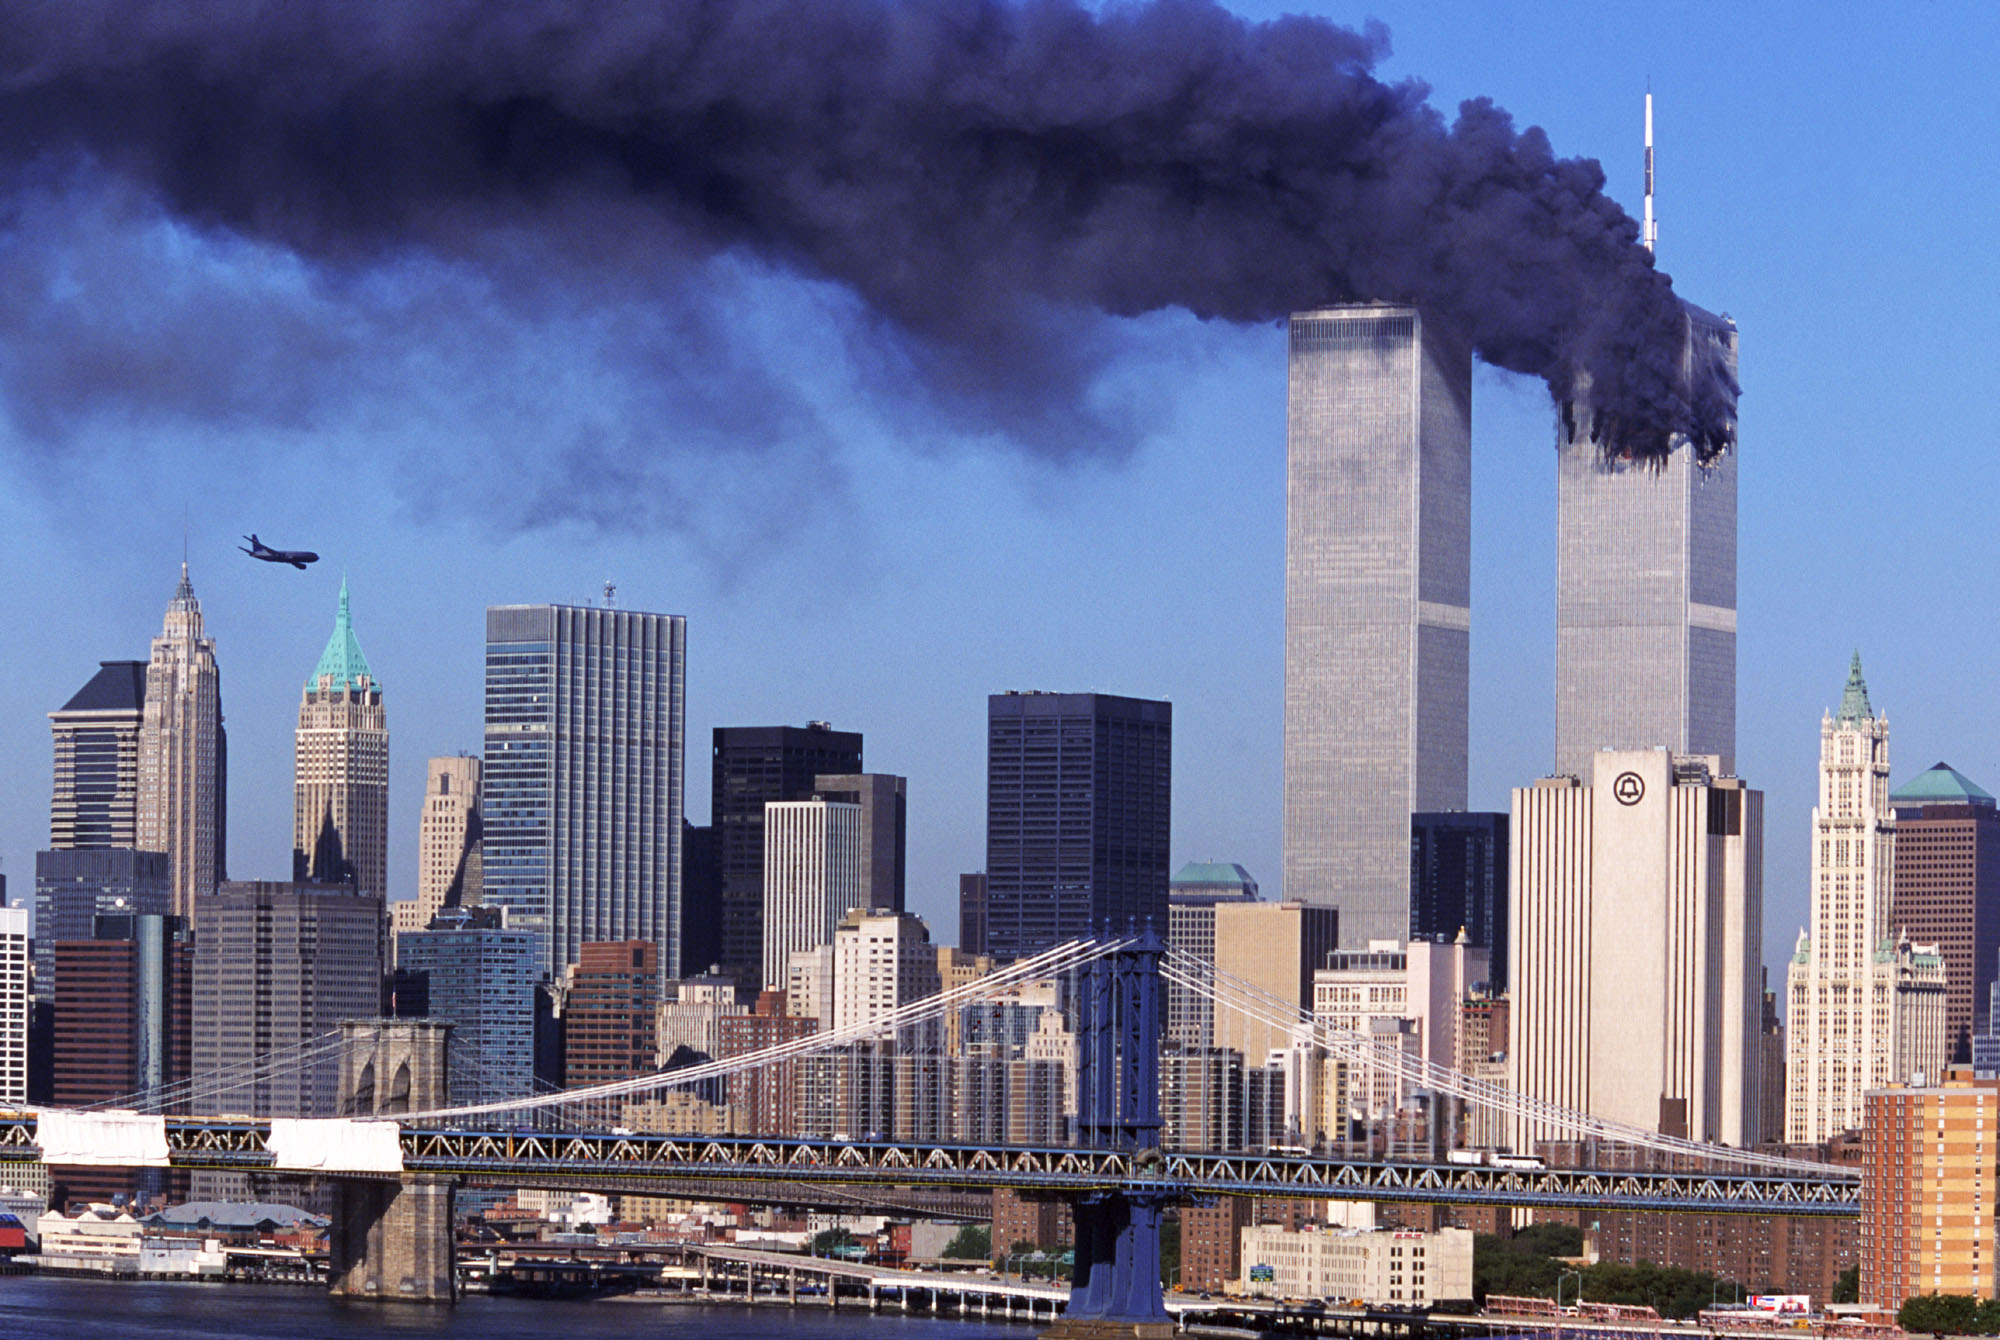 Hijacked United Airlines Flight 175 flies toward the south tower of the World Trade Center on Tuesday, Sept, 11, 2001.